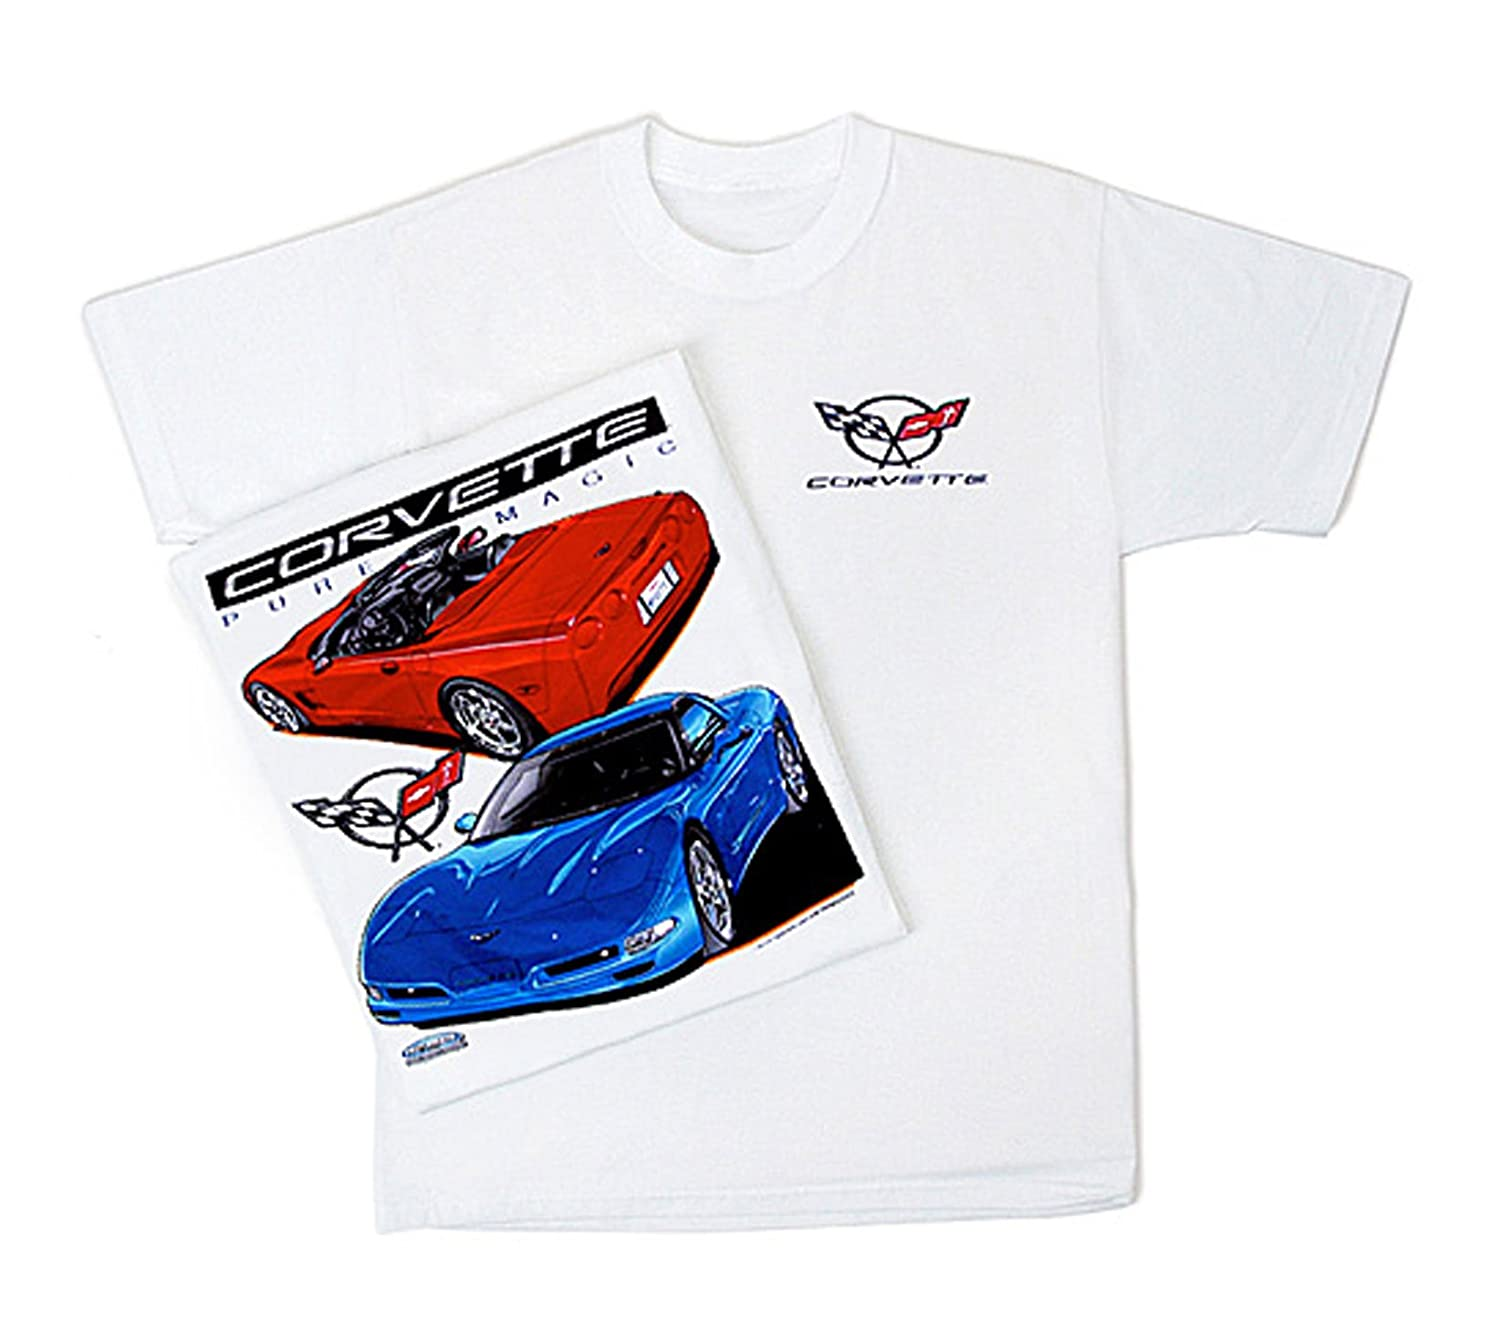 Gregs Automotive Corvette Pure Magic Chevrolet Chevy T Shirt Bundle of 2 Items One T-Shirt and One Racing Decal